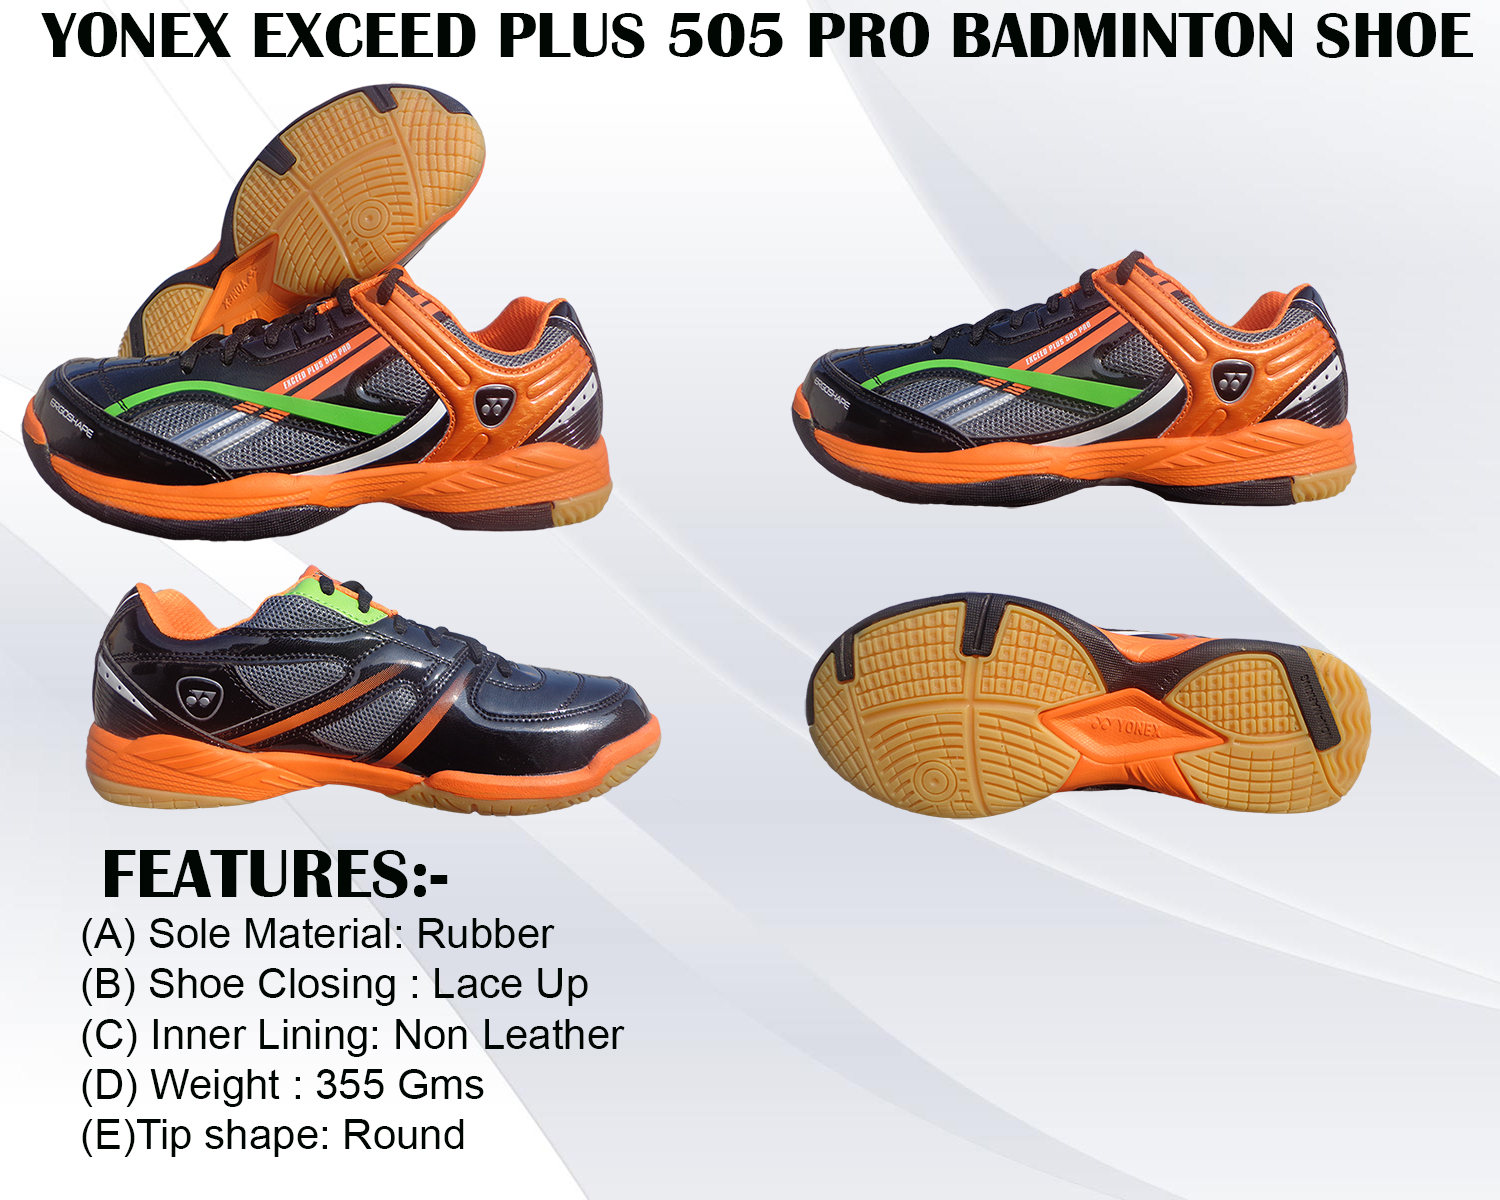 Yonex Exceed Plus 505 Pro Badminton Shoe Black and Orange